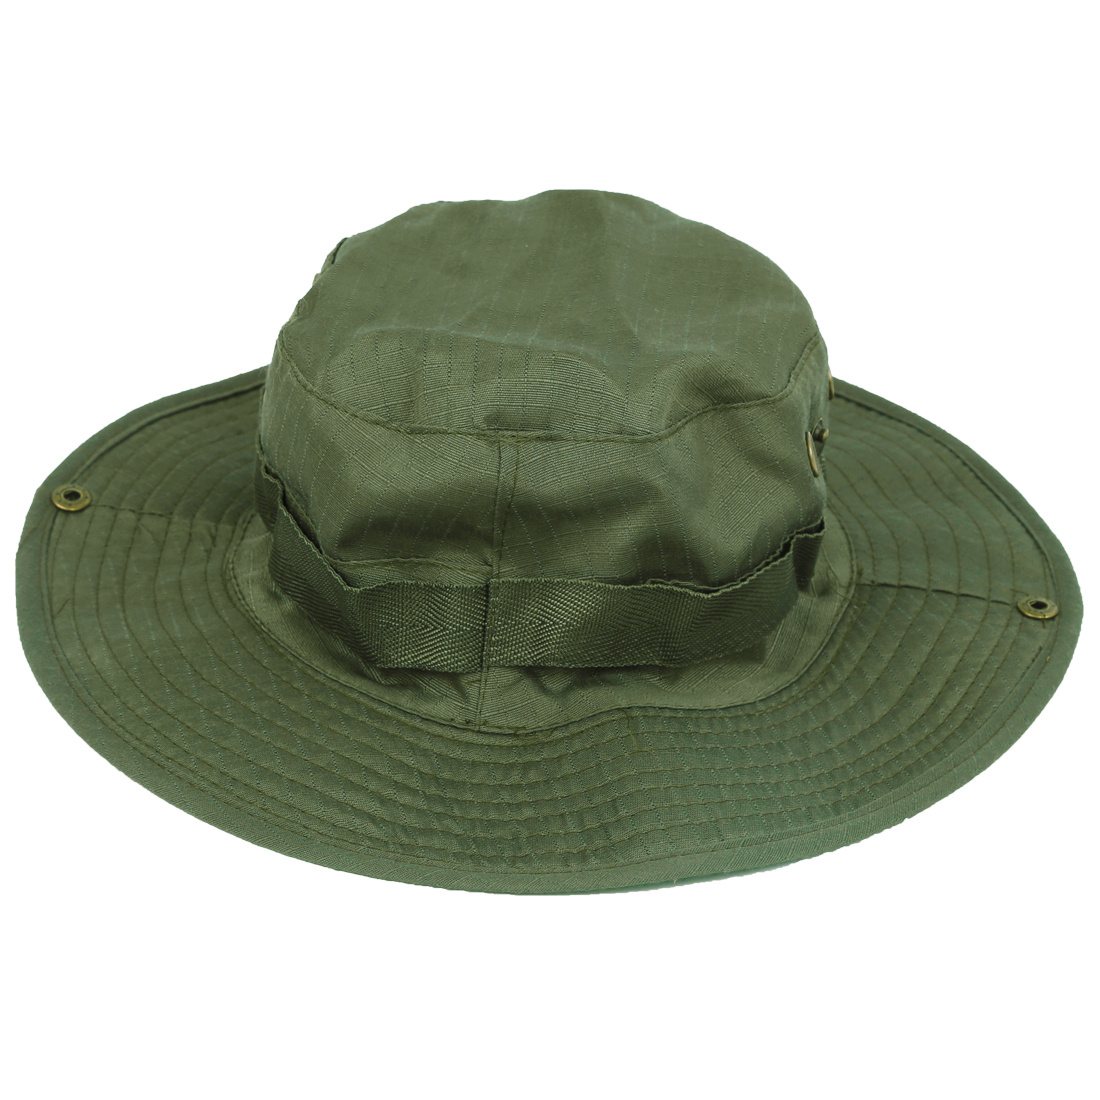 62462859d23 New Sale Outdoor Fishing Camping Hiking Sun Cap Round Rim Men Women Hat(dark  green